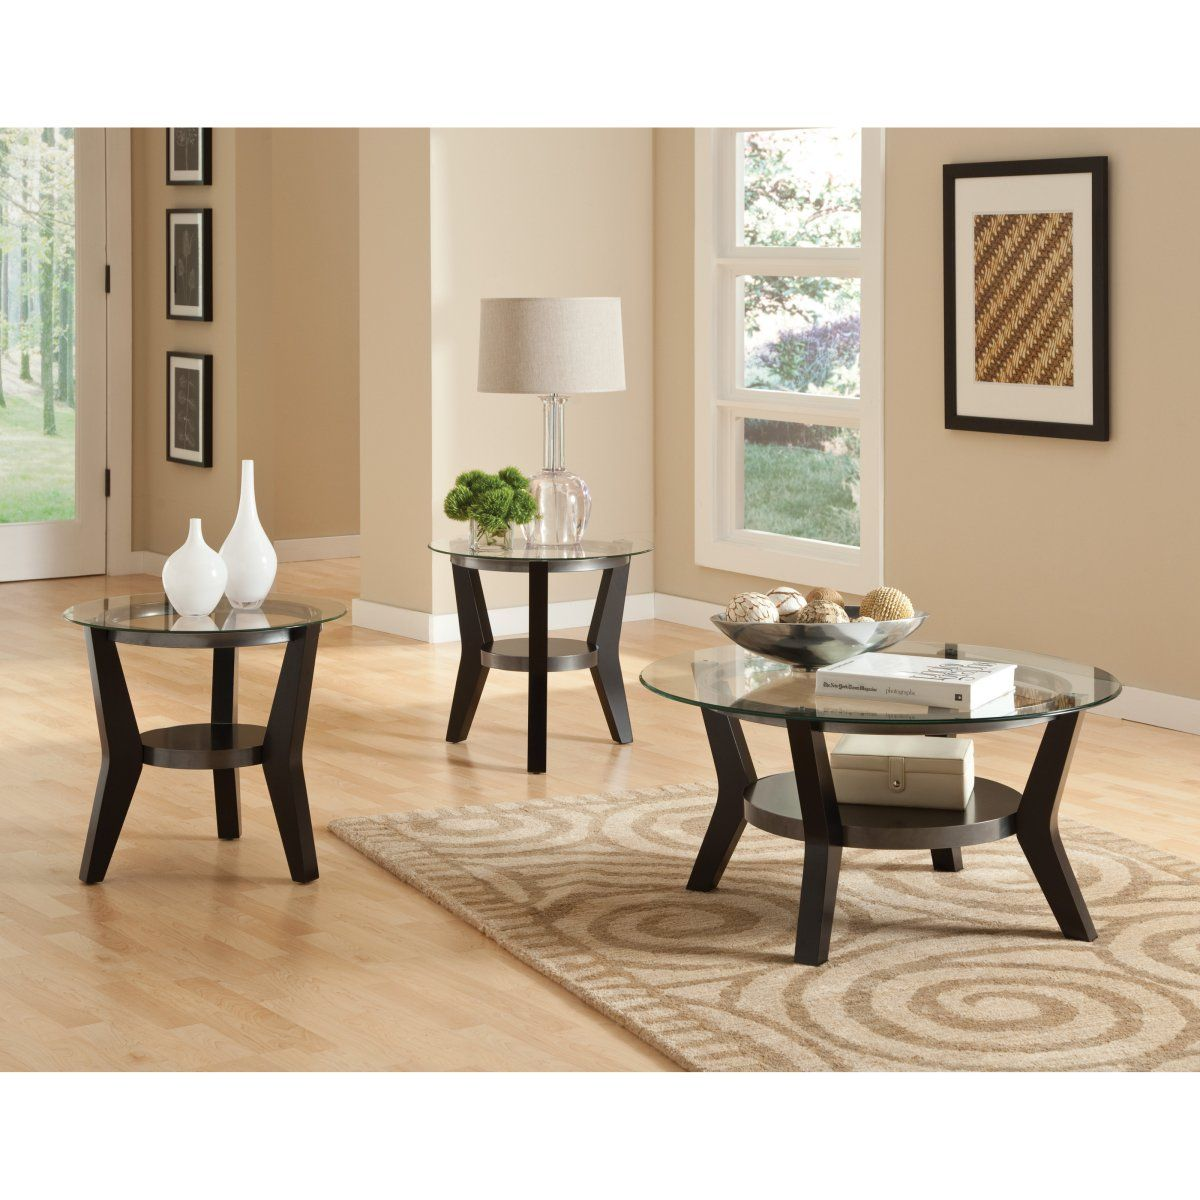 Standard Furniture Orbit Round Black Wood With Glass Top 3 Piece Coffee Table Set Living Room Coffee Table Coffee Table Round Glass Coffee Table [ 1200 x 1200 Pixel ]